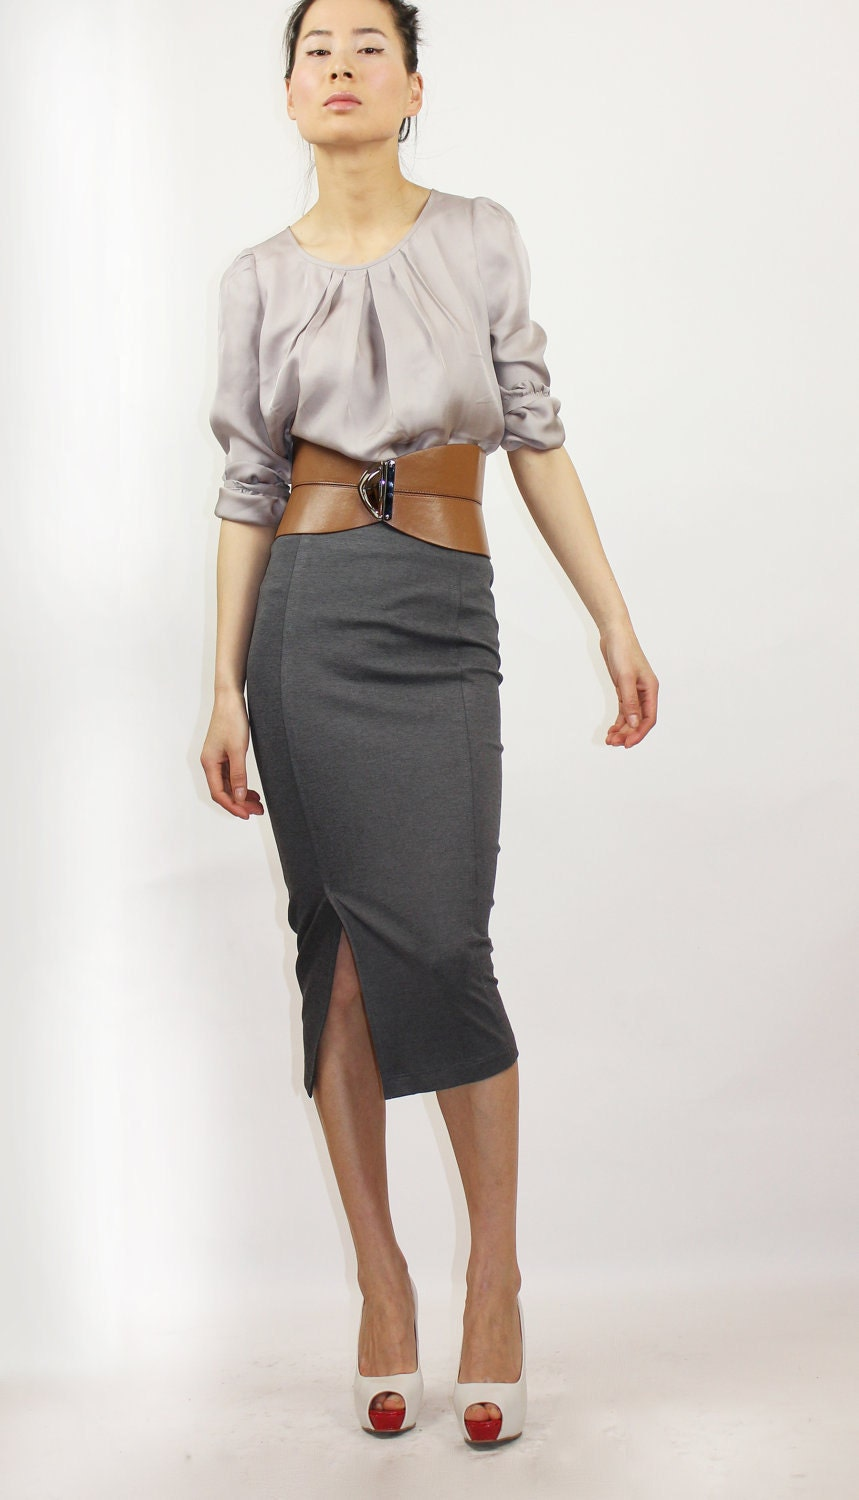 crop top and pencil skirt ideas pictures